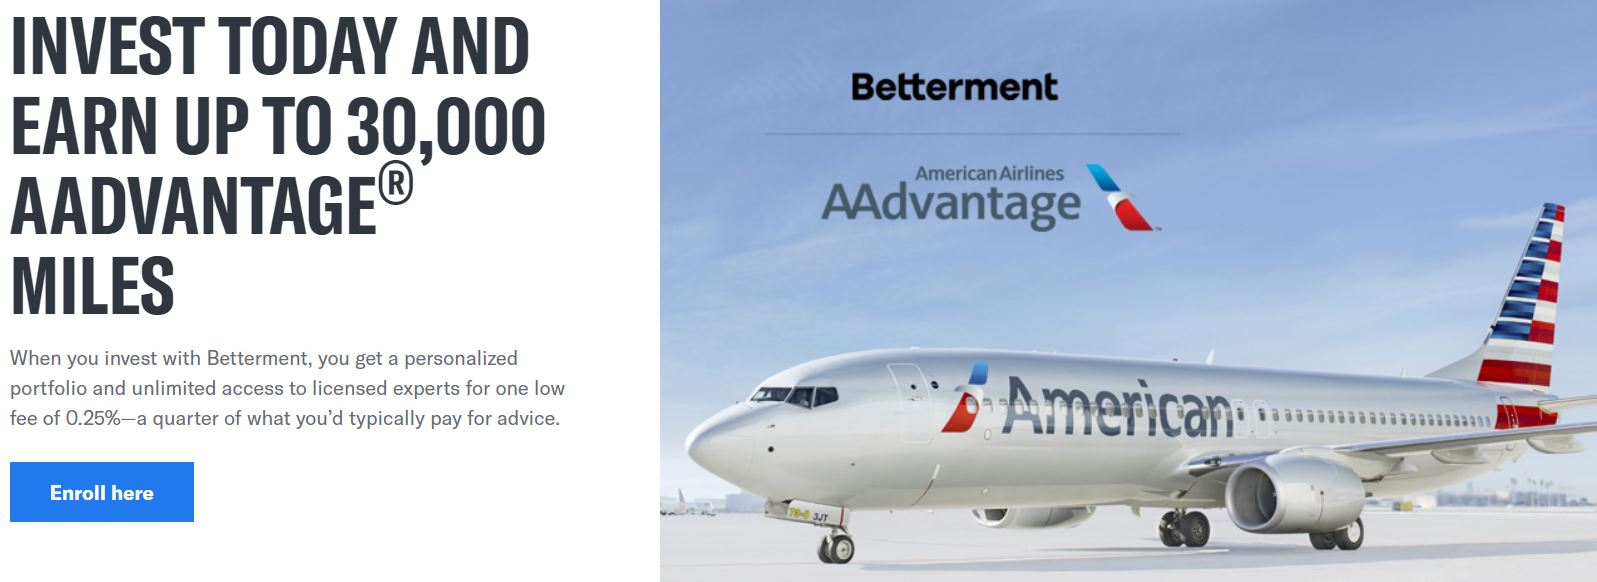 Betterment - American Airlines 30,000 miles